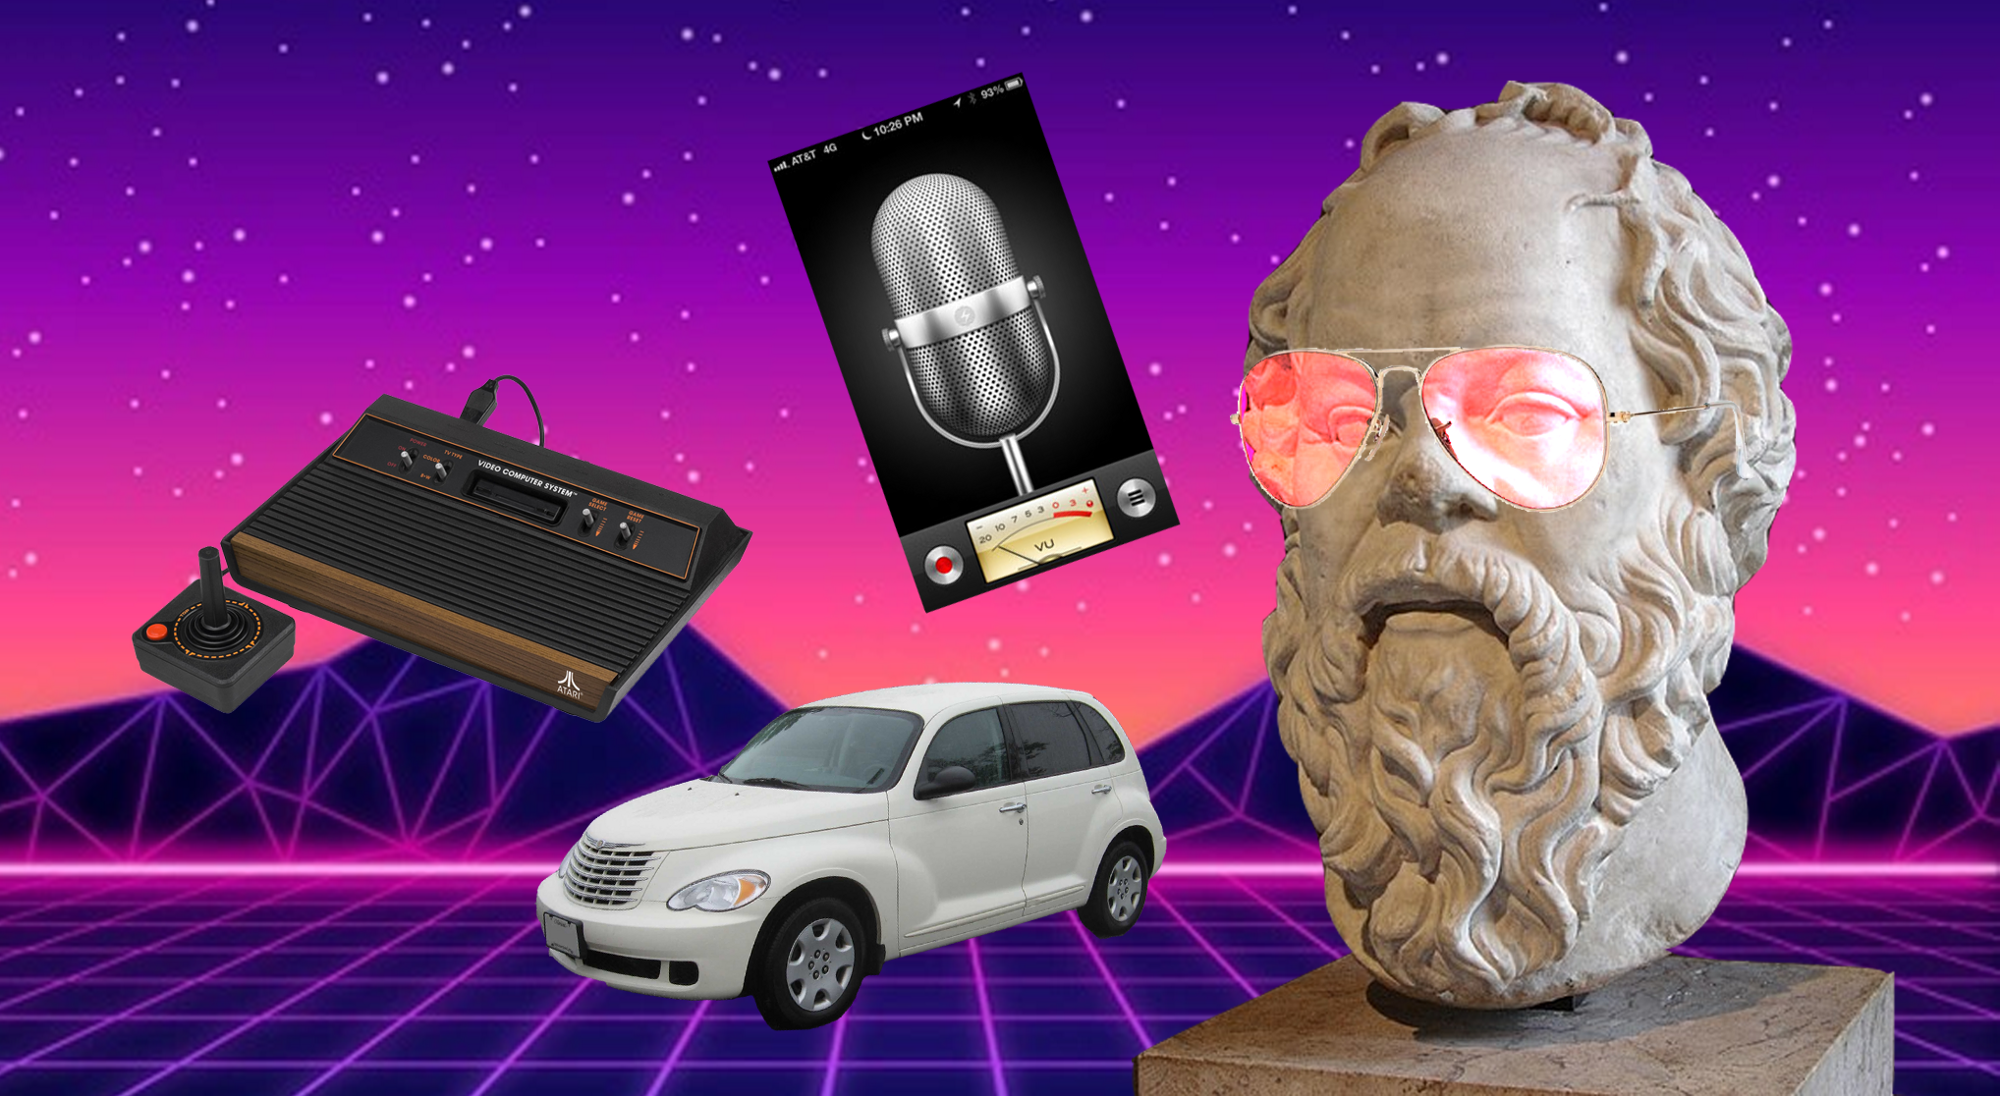 A bust of Socrates with Rose-Tinted Glasses, a retro-styled car, a 70s video game console and a microphone app